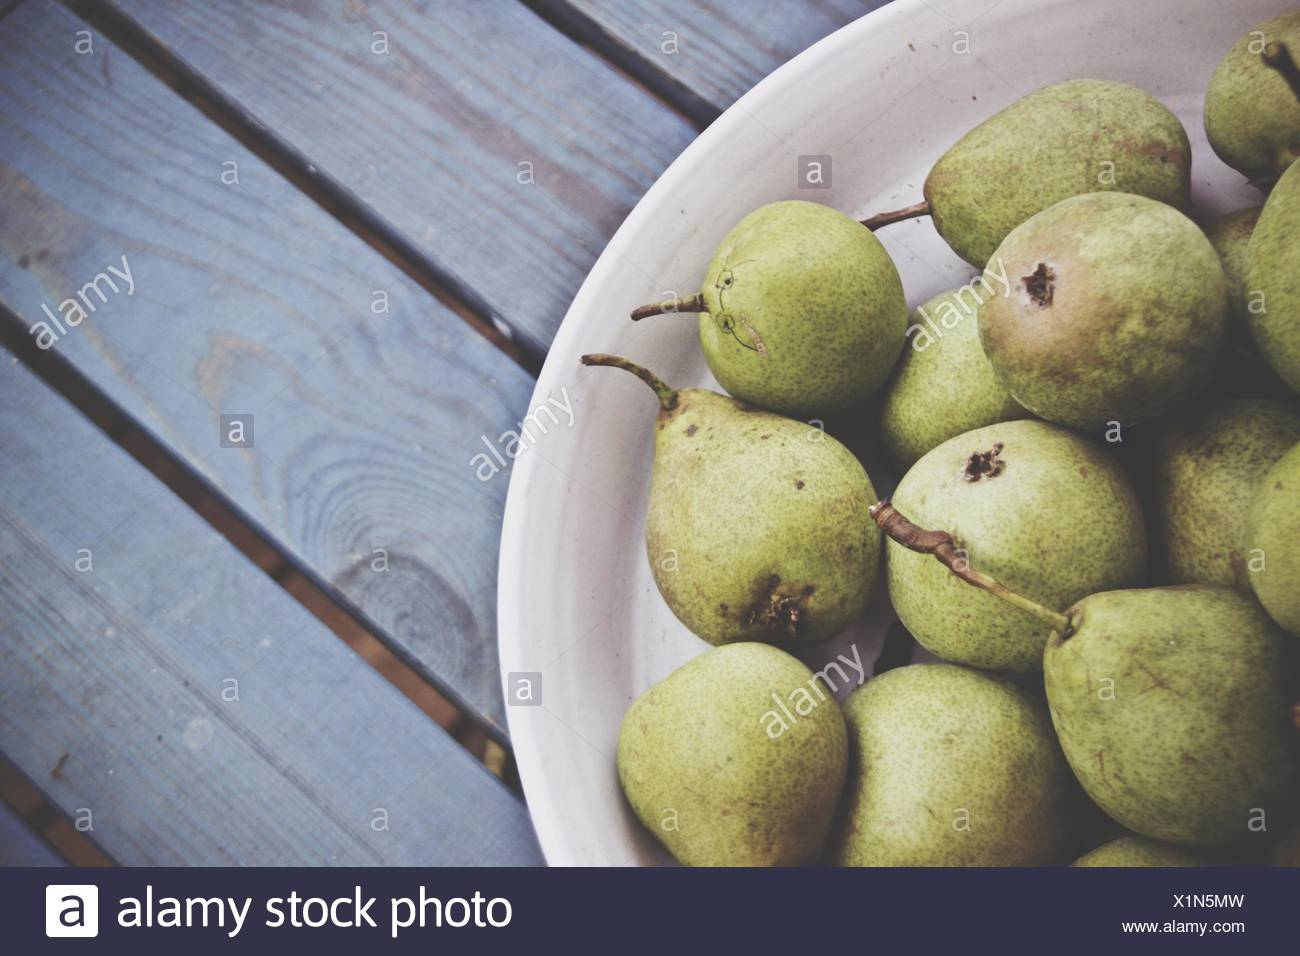 High Angle View Of Pears On Plate - Stock Image